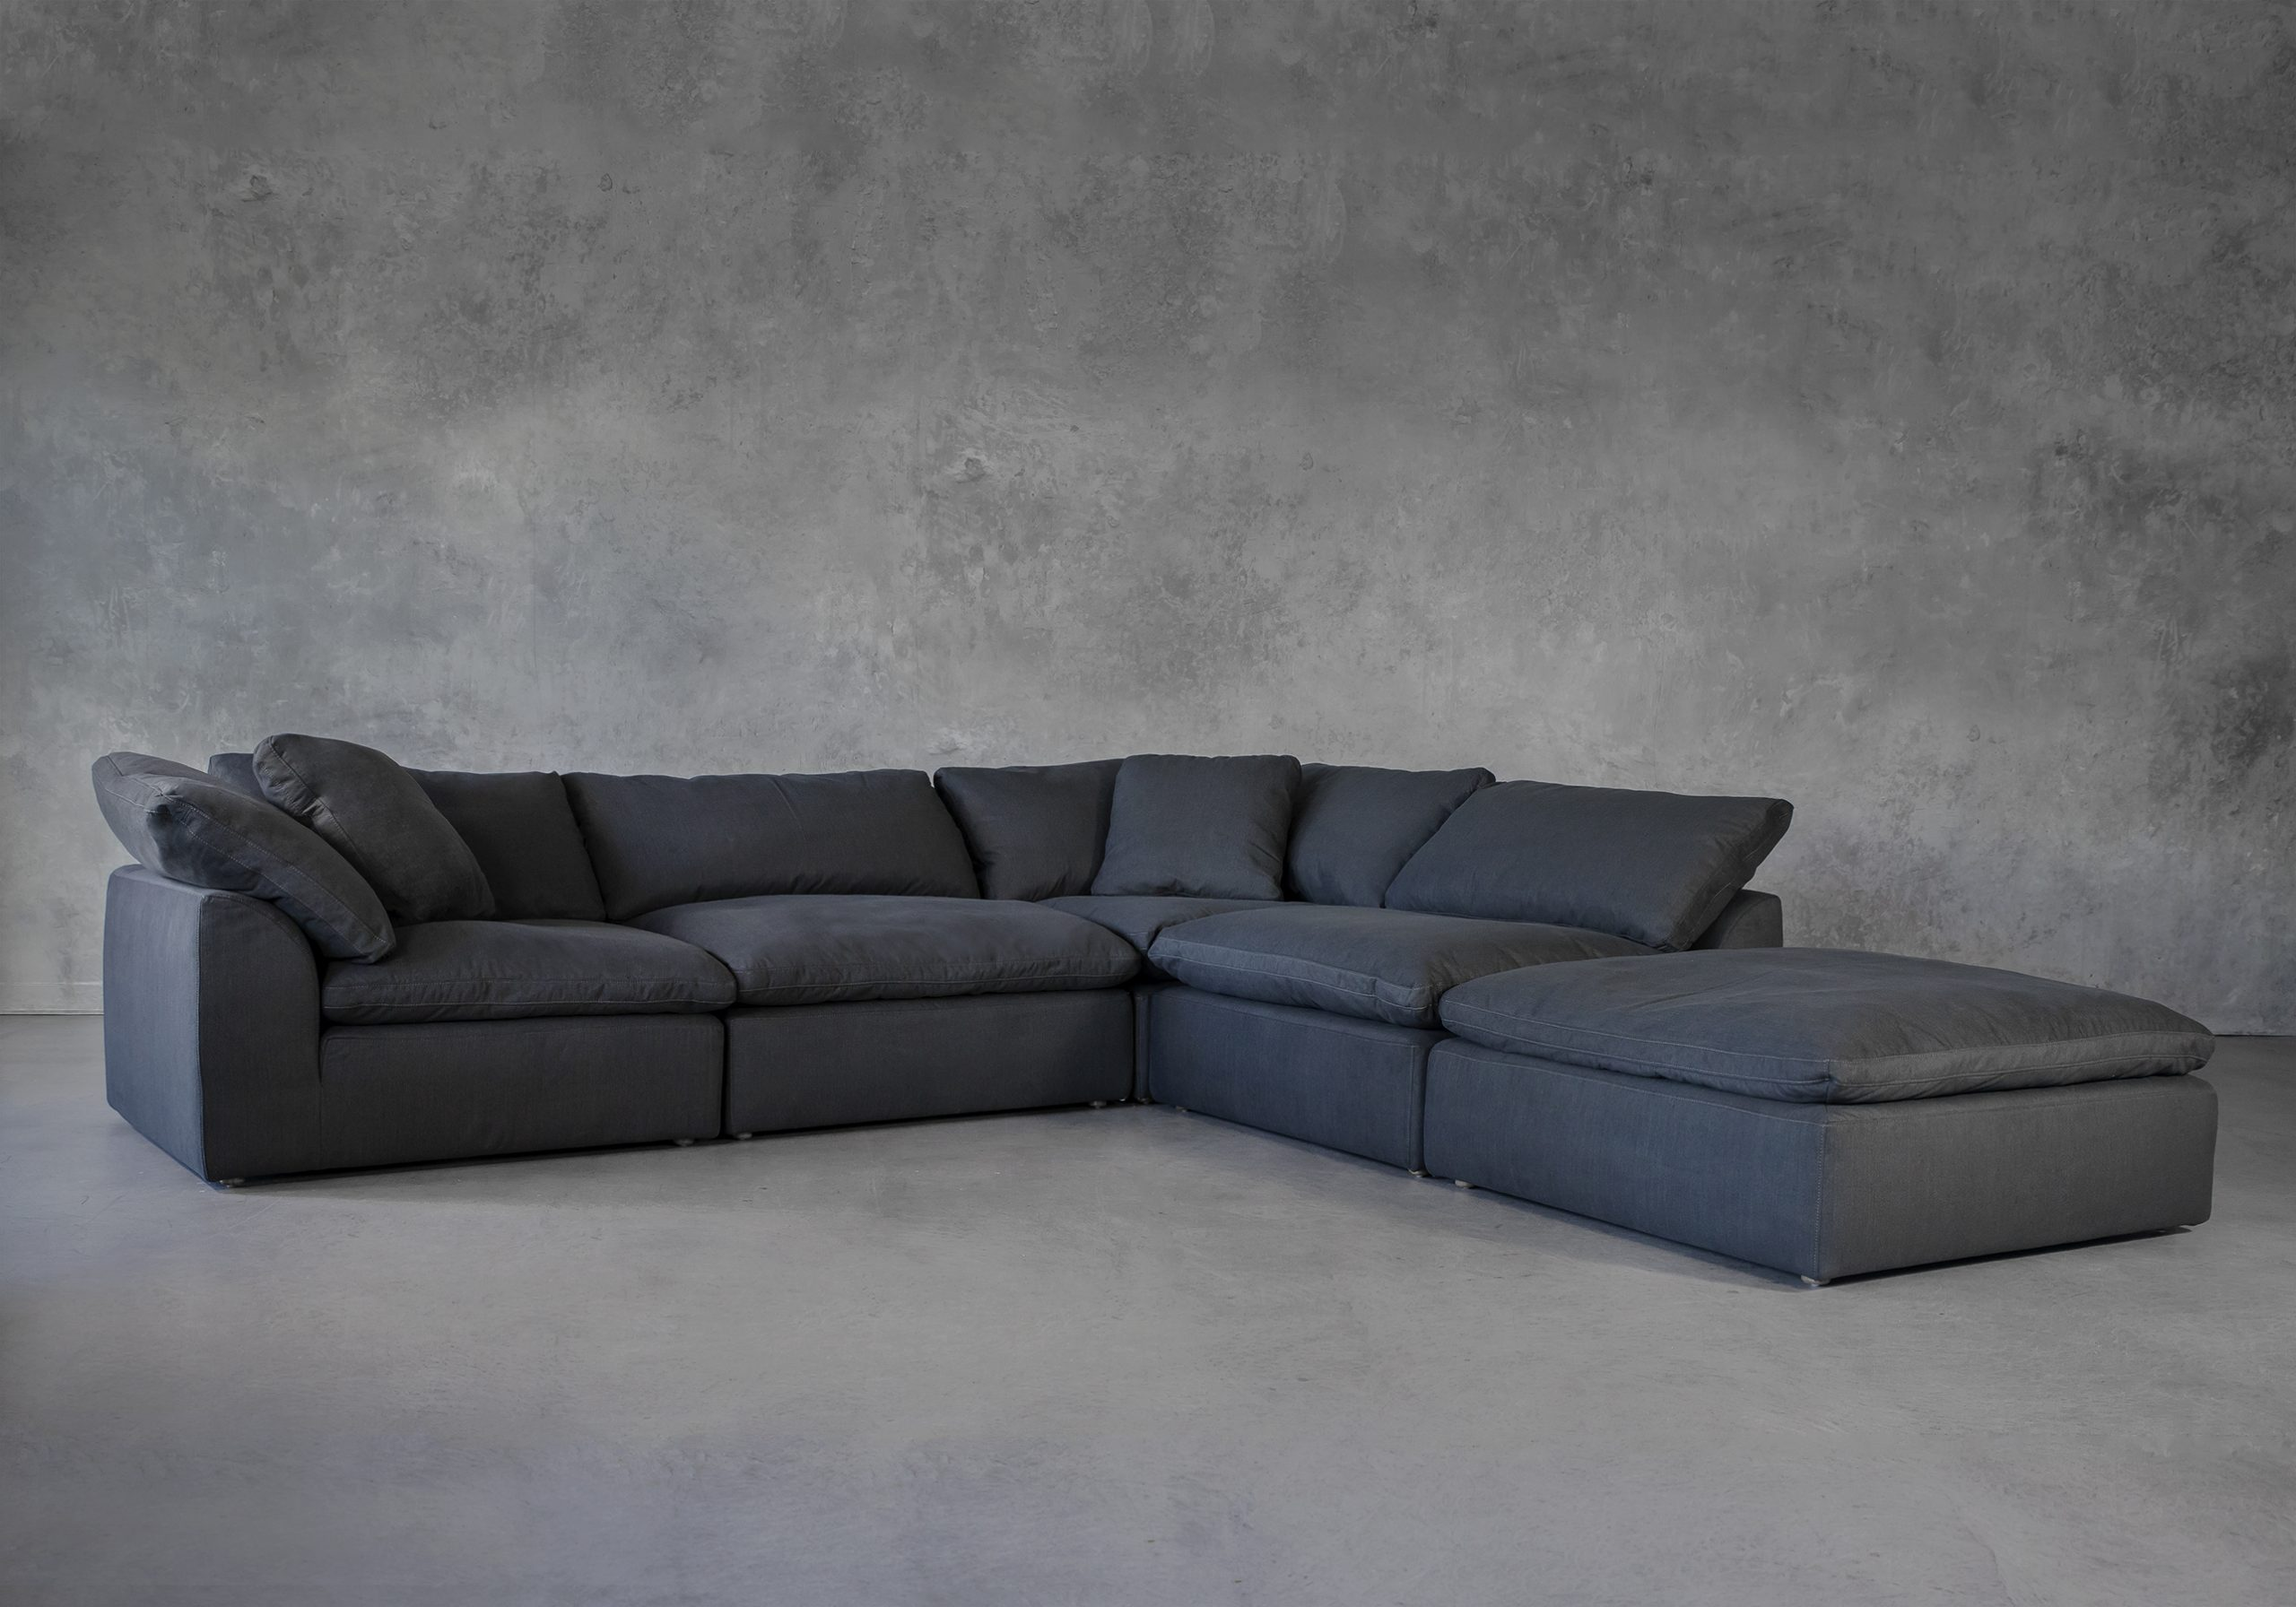 Tofino Sectional in Pepper Fabric, Angle